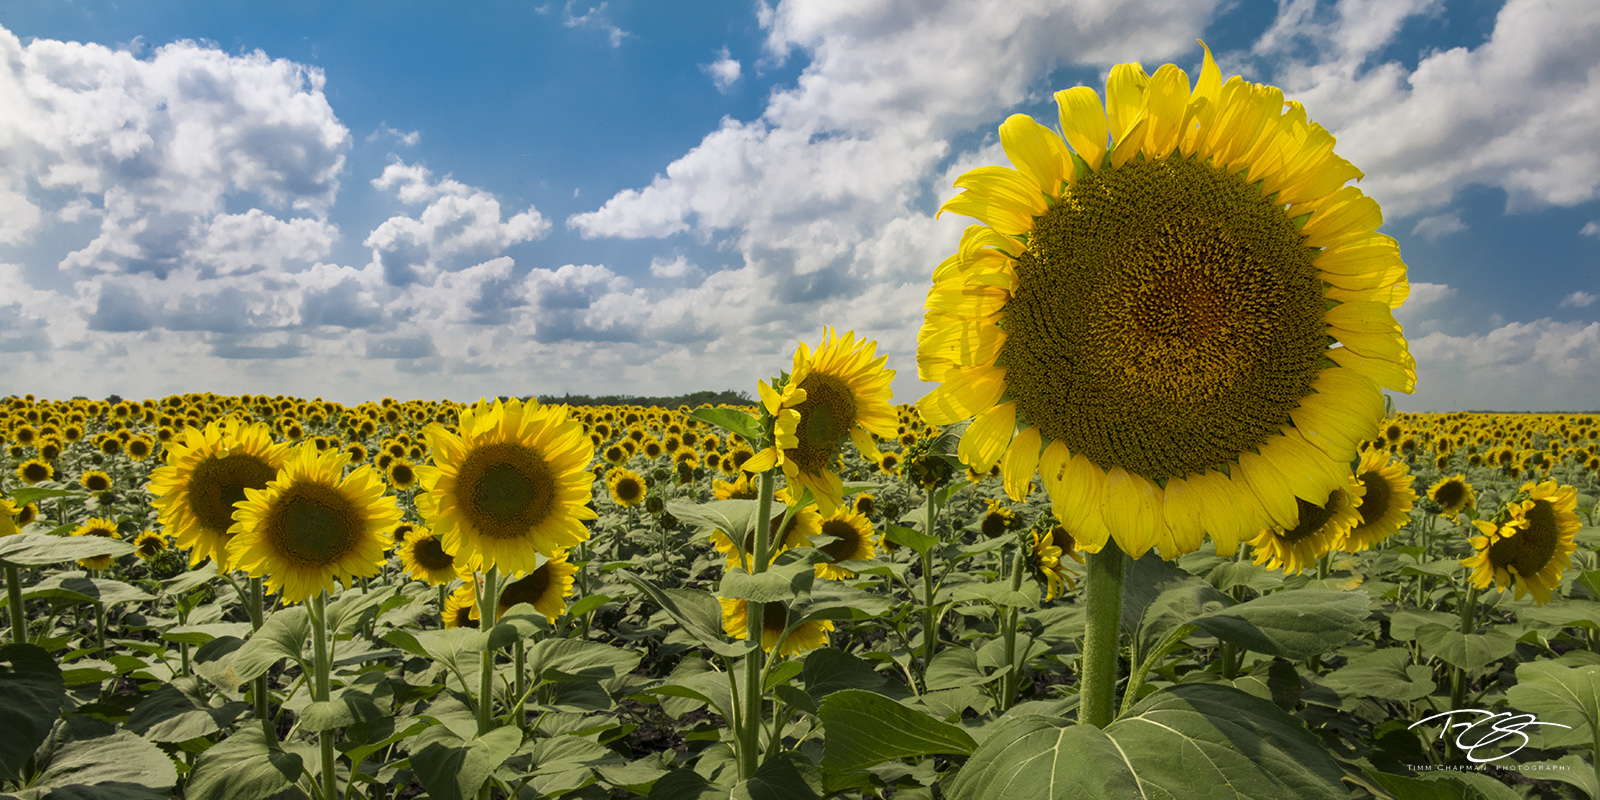 sunflower, sunflowers. field of sunflowers, panorama, north dakota, south dakota, clouds, yellow, blue, green, sunny side up, photo